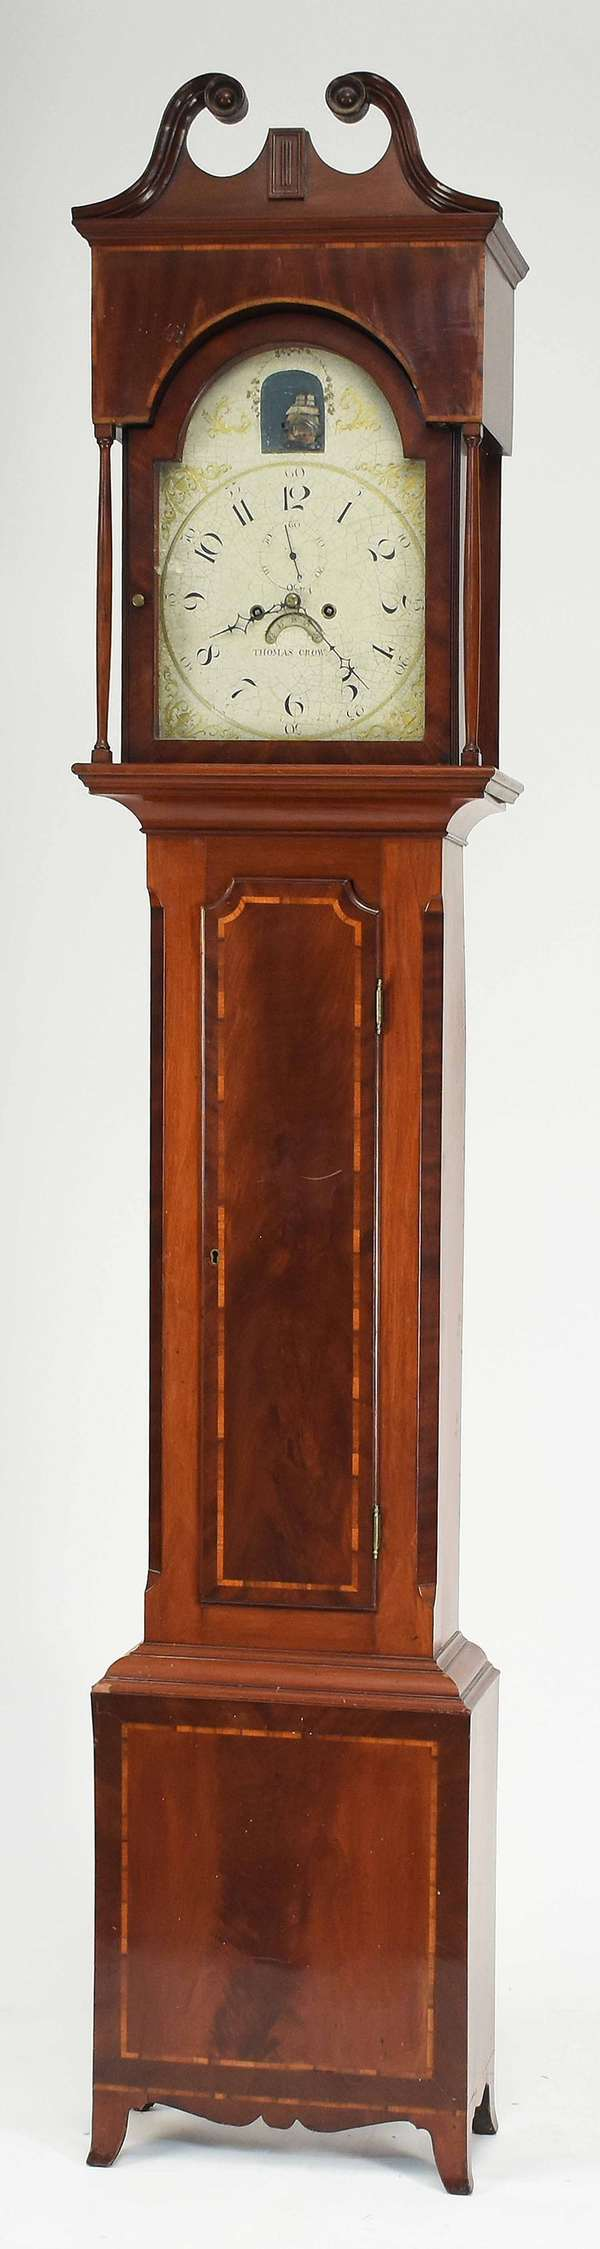 "Thomas Crow, Wilmington Delaware, Federal mahogany grandfather clock, case with banded inlay on French feet, bonnet flanked by slender side columns. Dial signed ""Thomas Crow"", hand painted with gilding and rocking ship movement. 97""H, bonnet 19.5""W x 10""D. Condition: glass in bonnet cracked in lower right corner, bonnet with some old repairs but mainly original. Base appears mostly original some old repairs. Craquelure to dial but original paint."